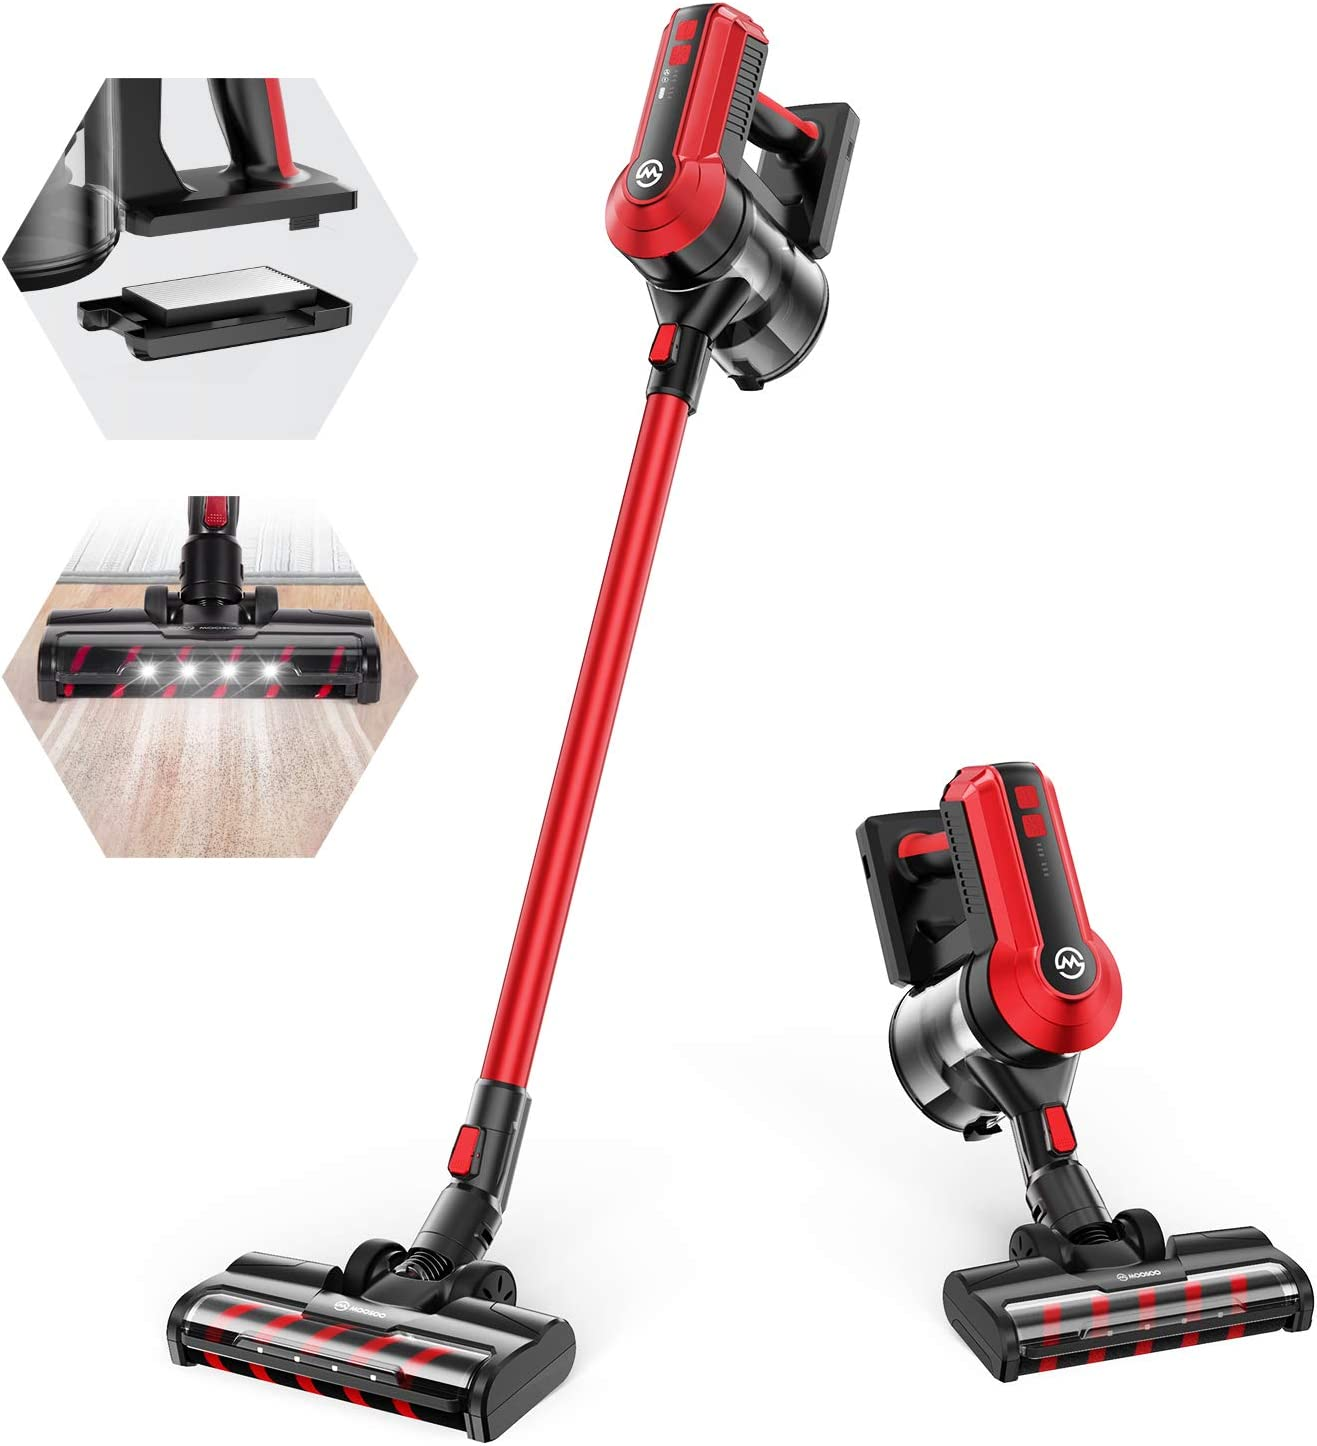 MOOSOO Cordless Vacuum, 300W Powerful Stick Vacuum, 5 Stages Filtration System, 35 mins Runtime, 4-in-1 Vacuum Cleaner for Hard Floor Carpet Pet Car